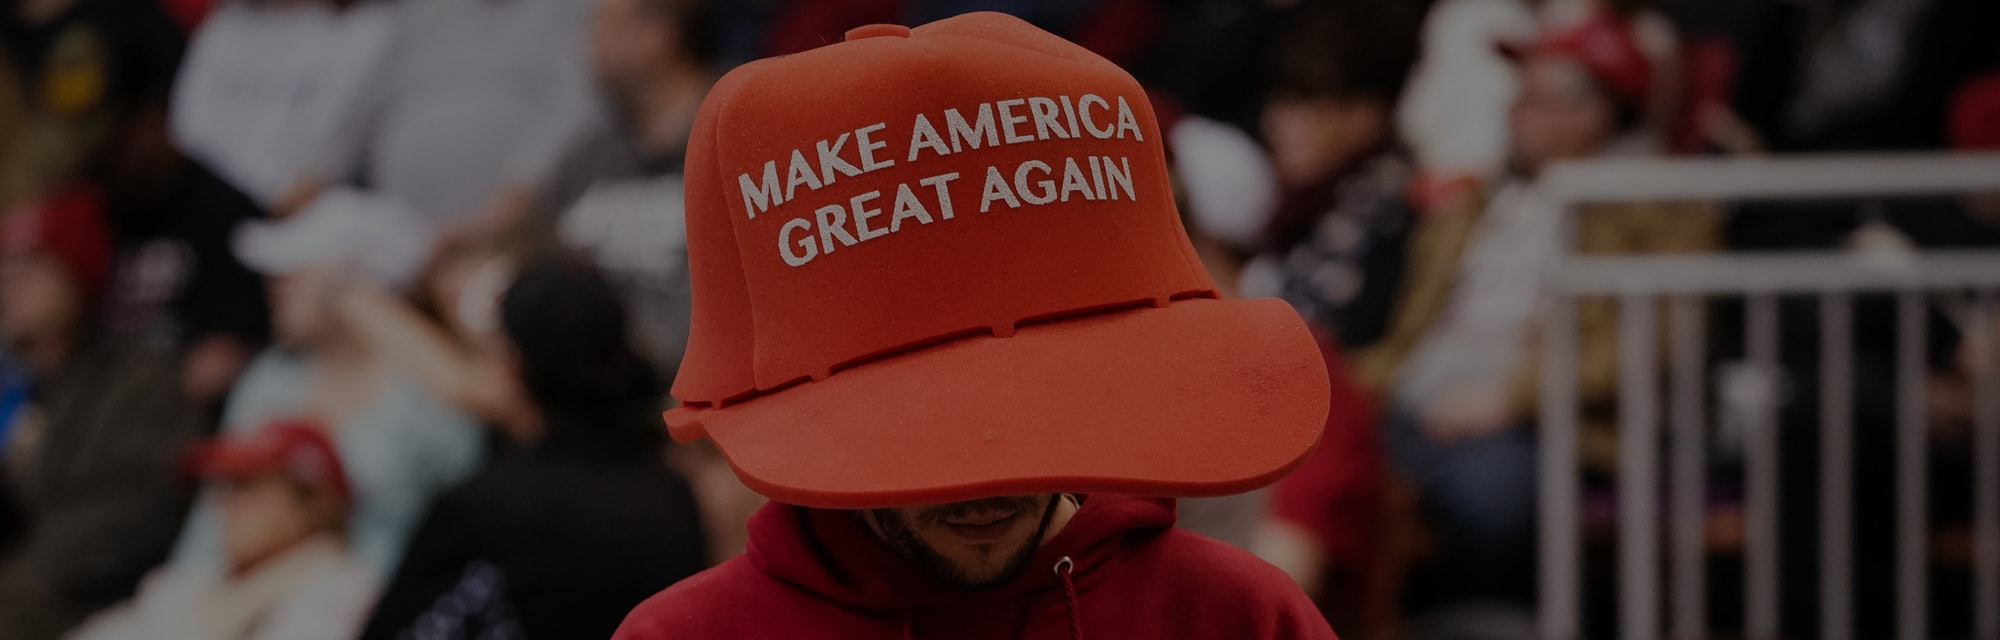 """A Trump supporter can be seen wearing a large sized hat with """"Make America Great Again"""" on it. His shirt says the same statement. They are both red in color. He is holding a phone in both hands."""